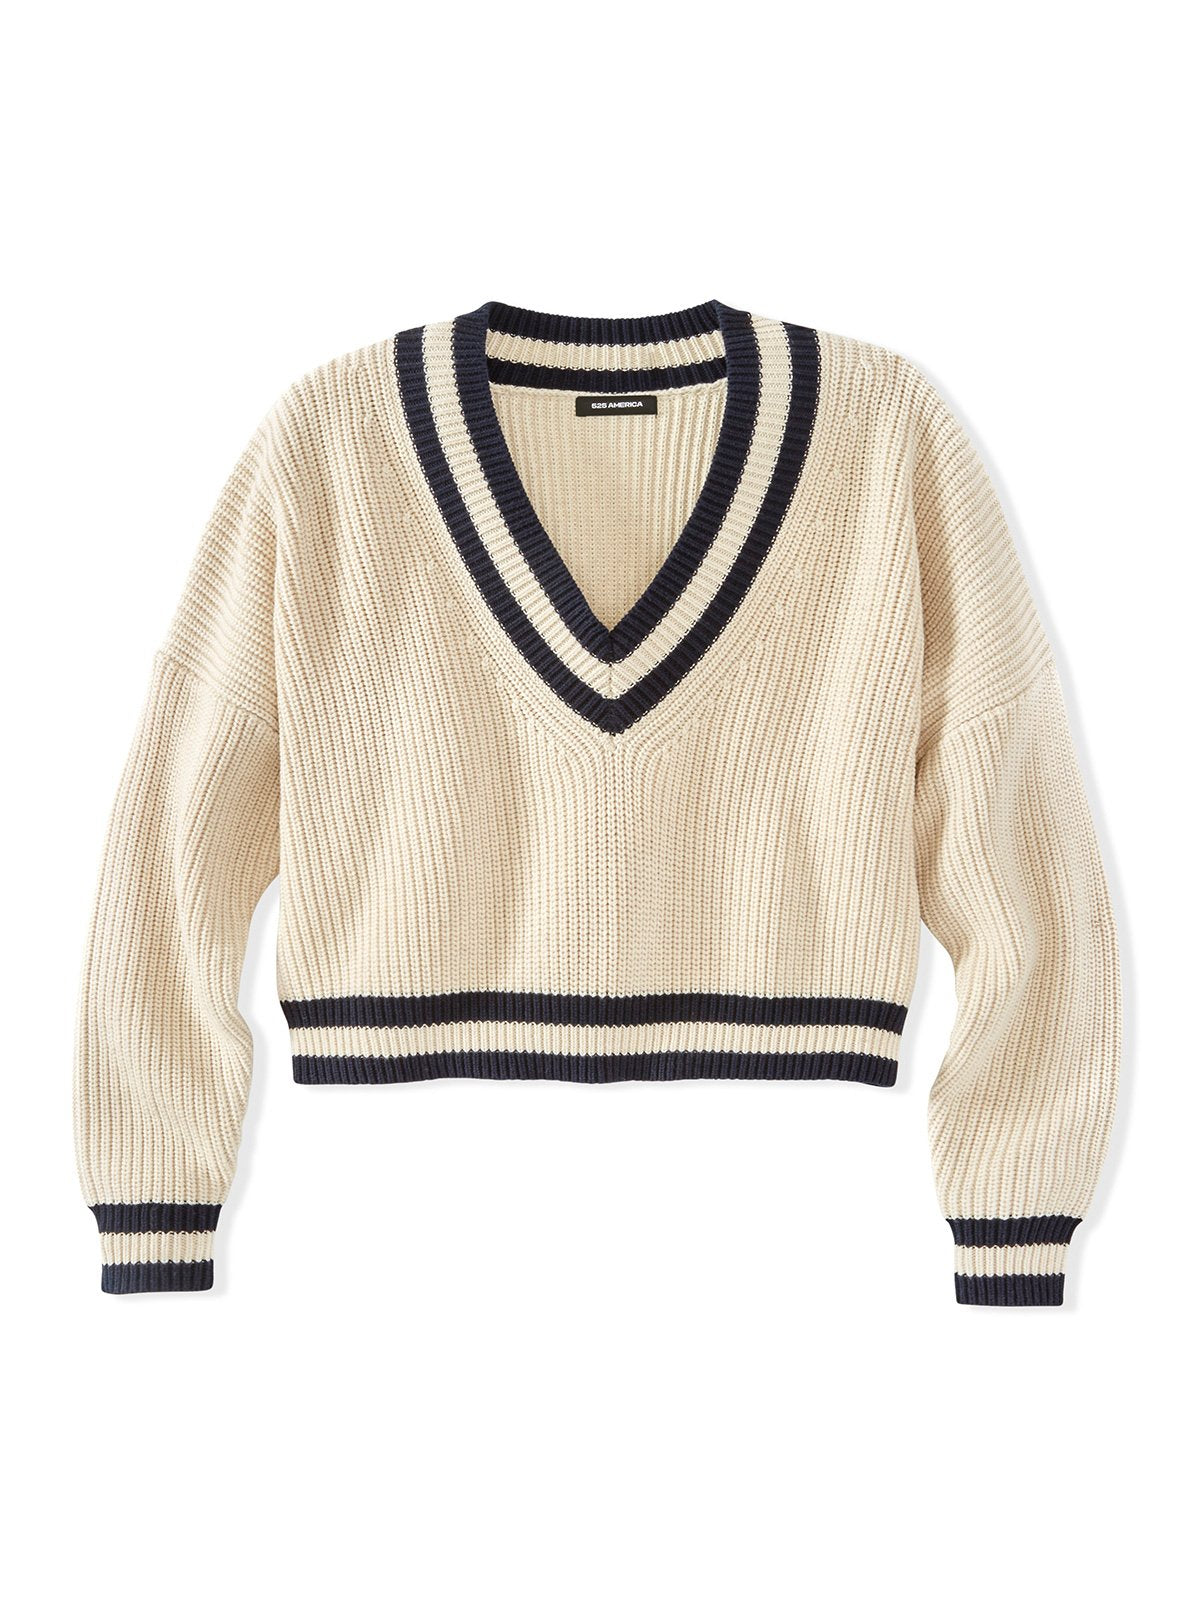 525 America Cotton Shaker Varsity Sweater